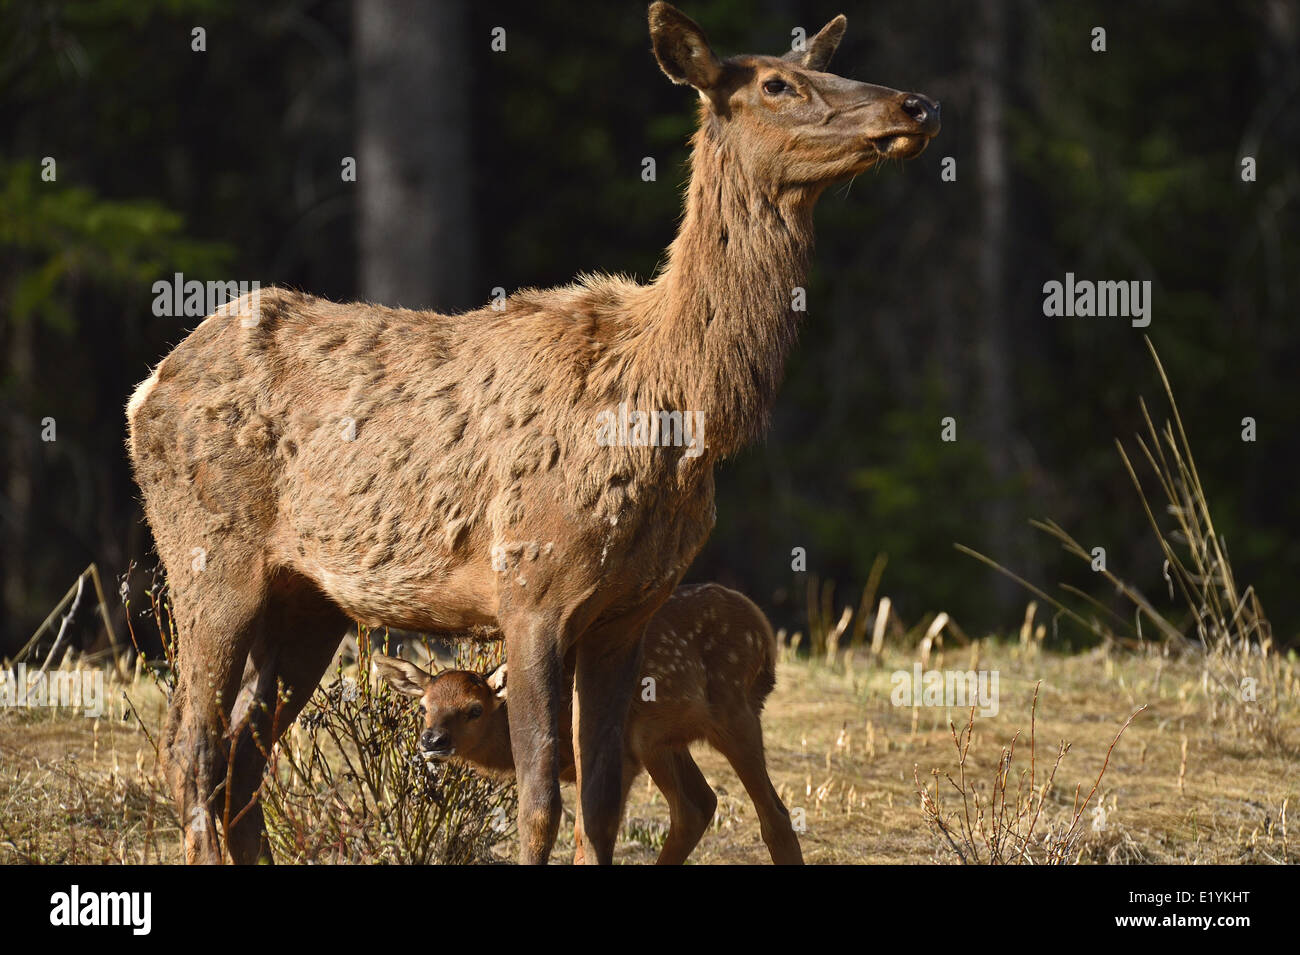 A mother elk with a new baby standing in an open area - Stock Image